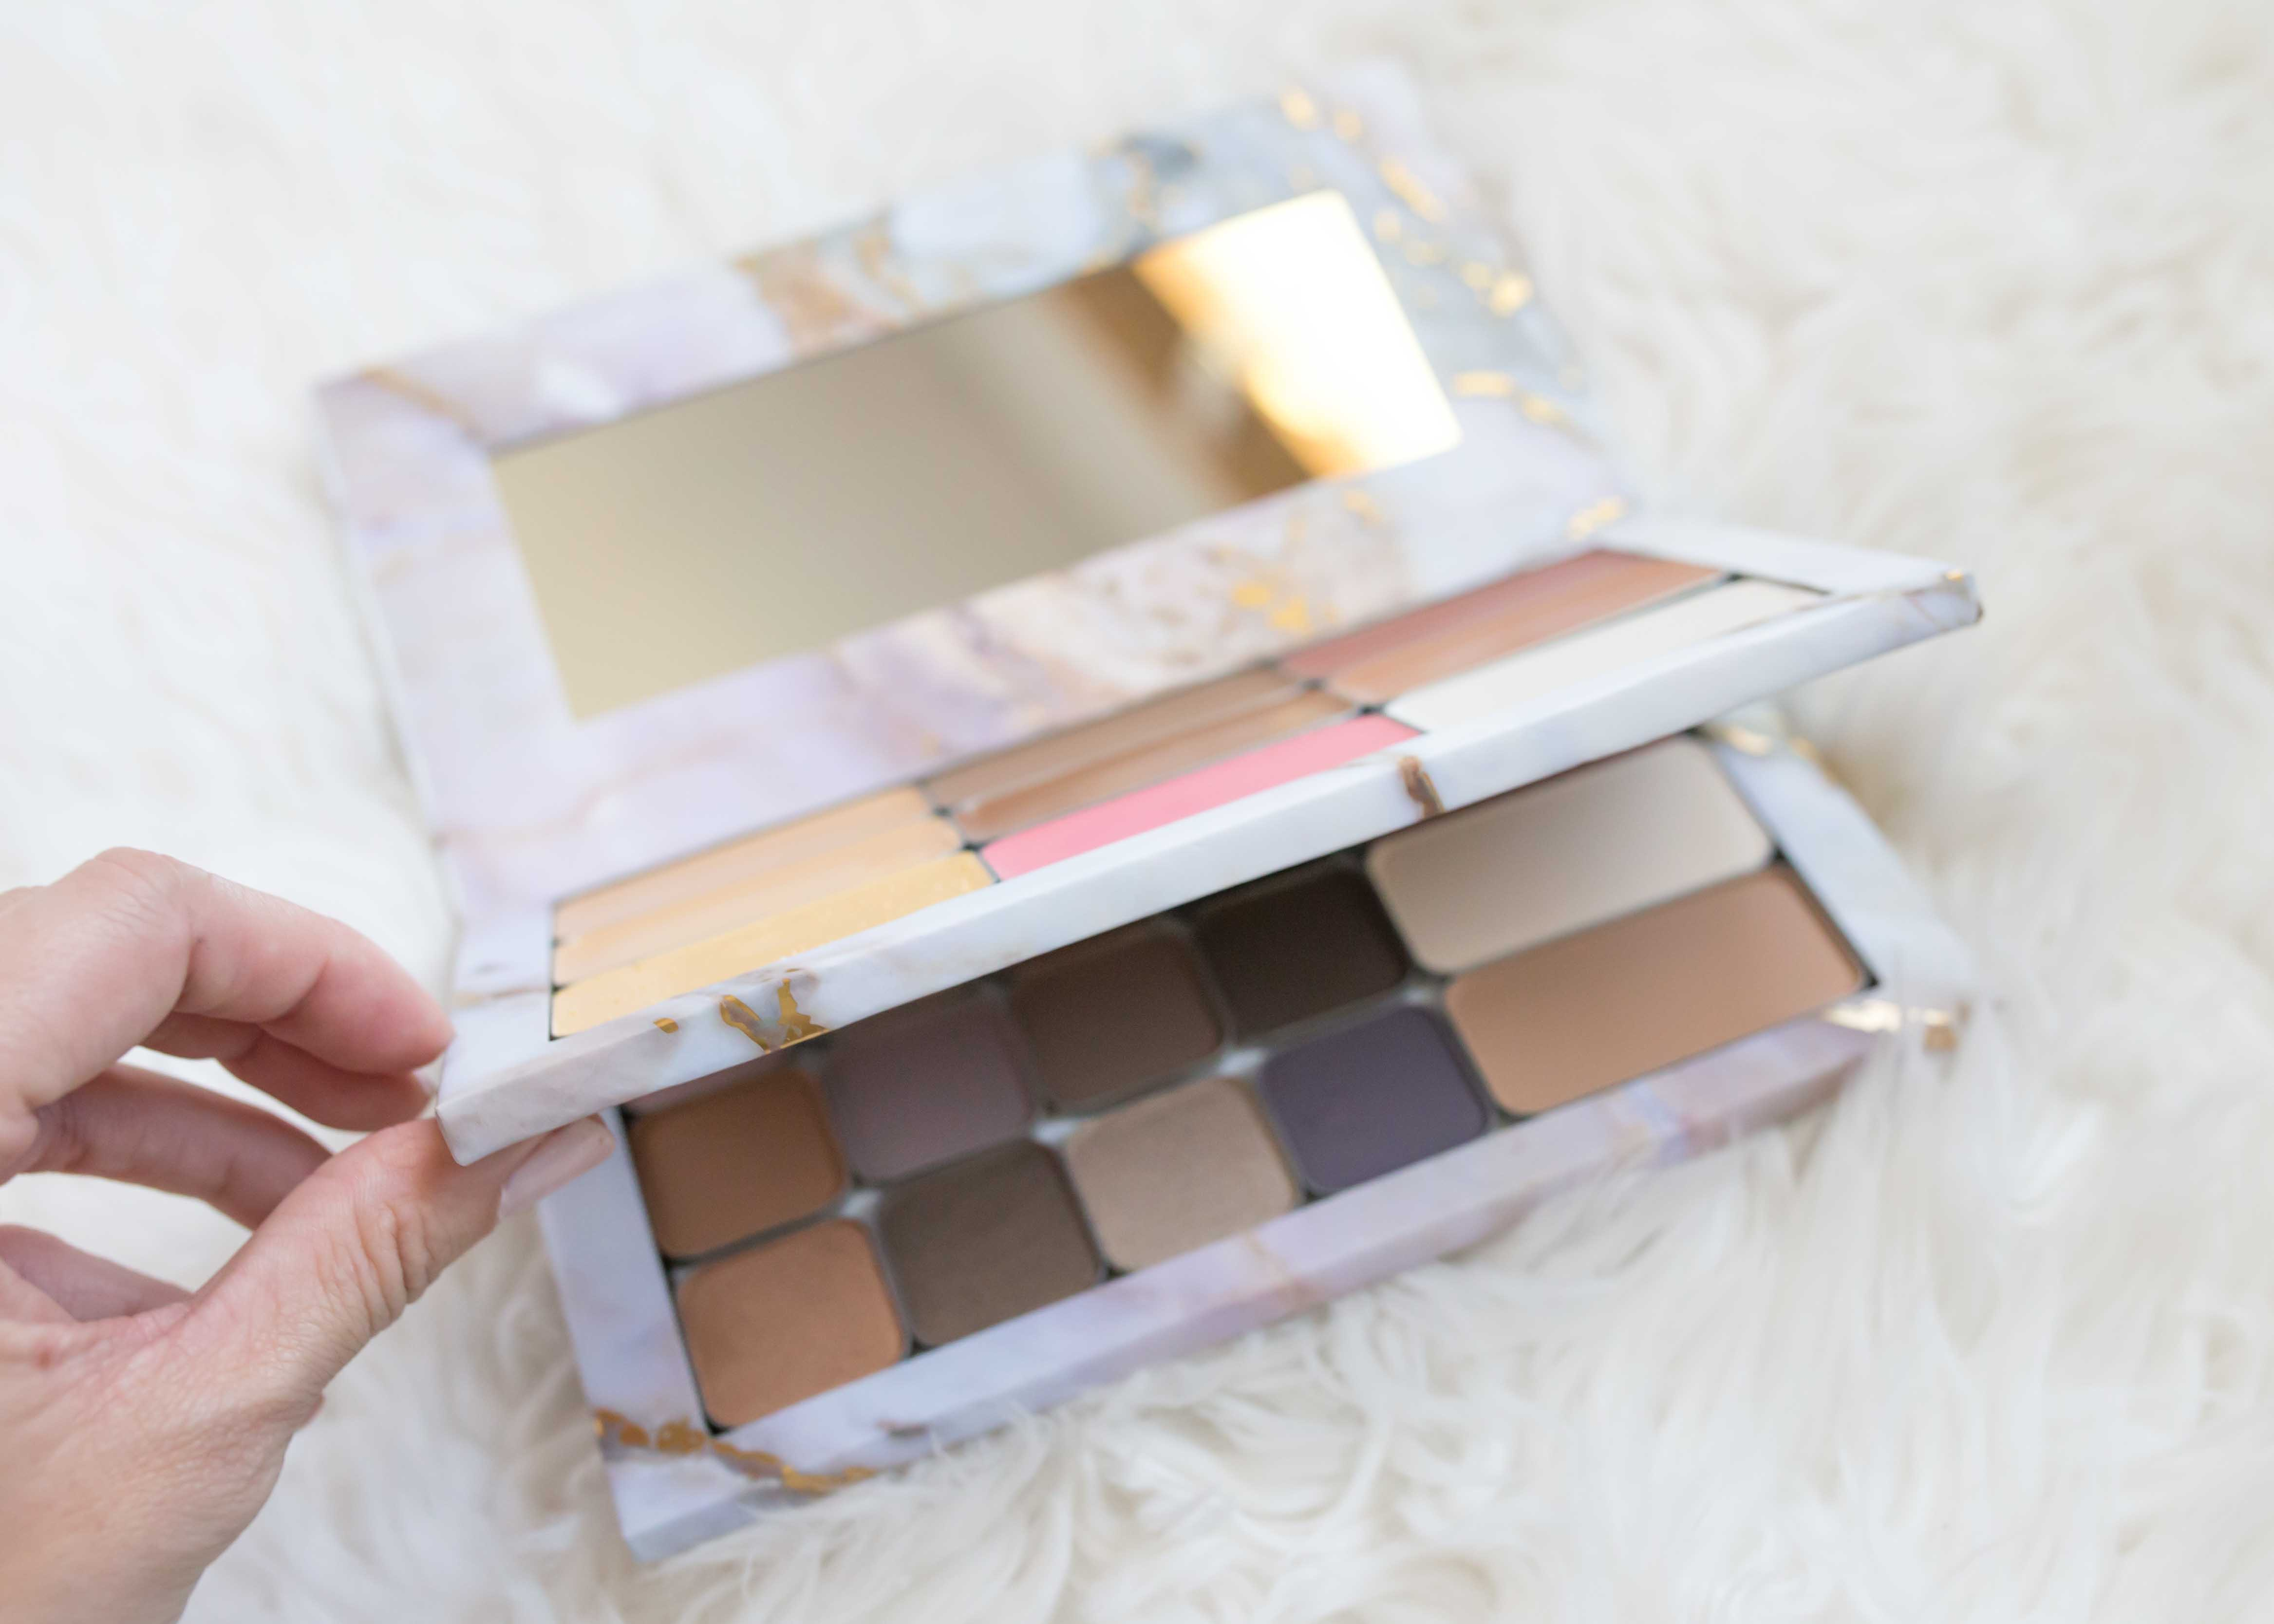 The Lazy Girl's Makeup Guide by Altanta blogger Casual Claire